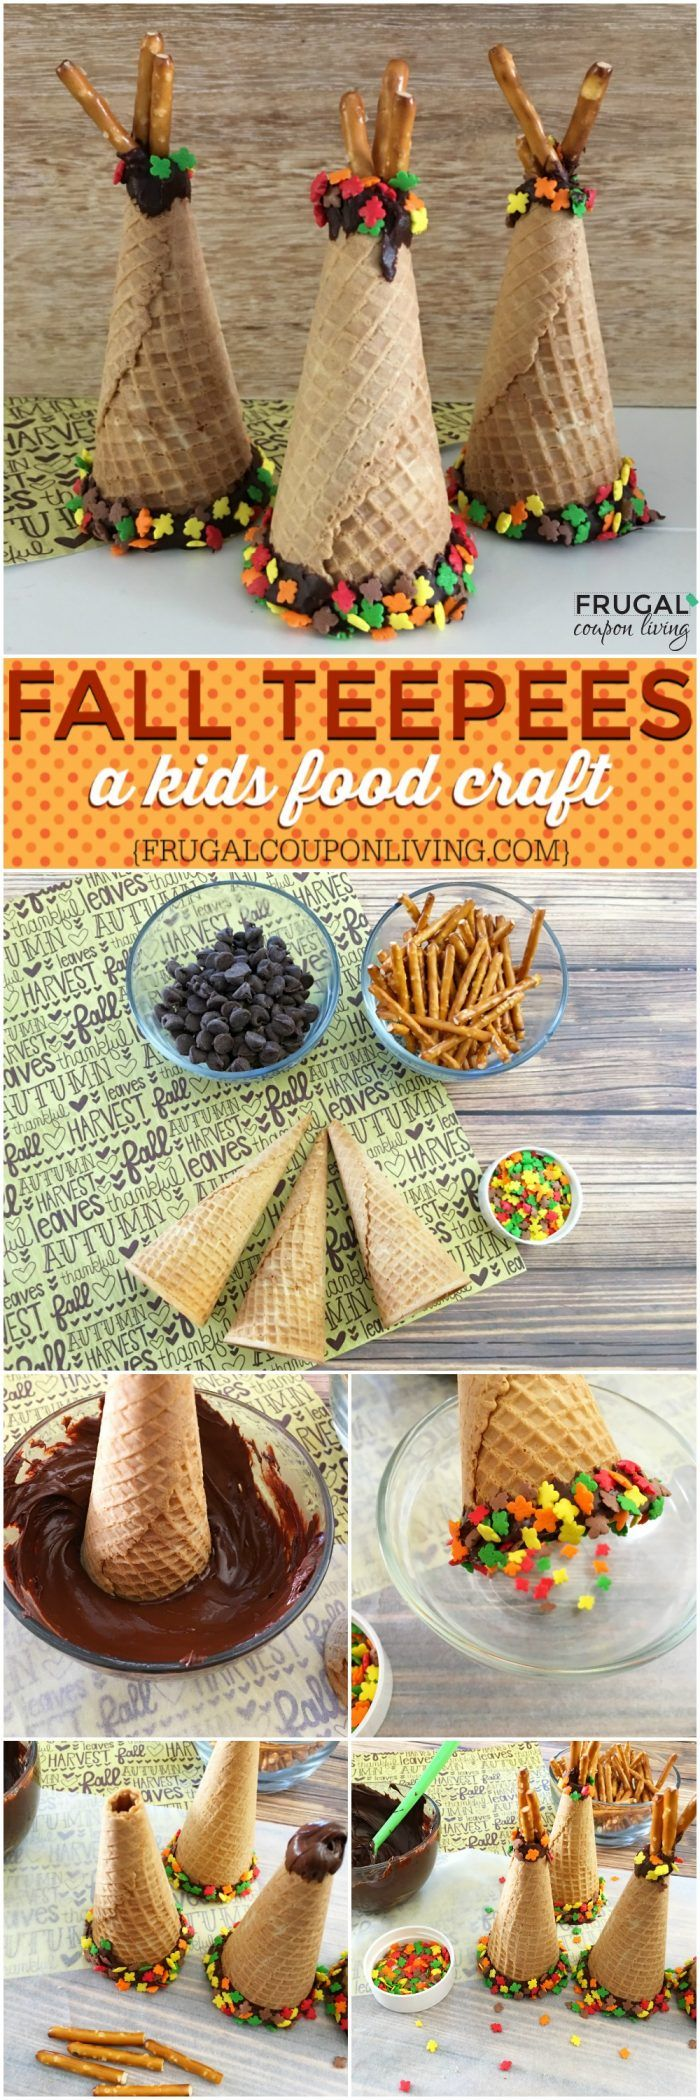 Fall Ice Cream Cone Teepees on Frugal Coupon Living. A fall kids food craft. We love this on the Kid's Thanksgiving Table but it also is fun in school when studying Native Americans. Fall Food Craft for Kids. #teepee #kids #thanksgiving #craft